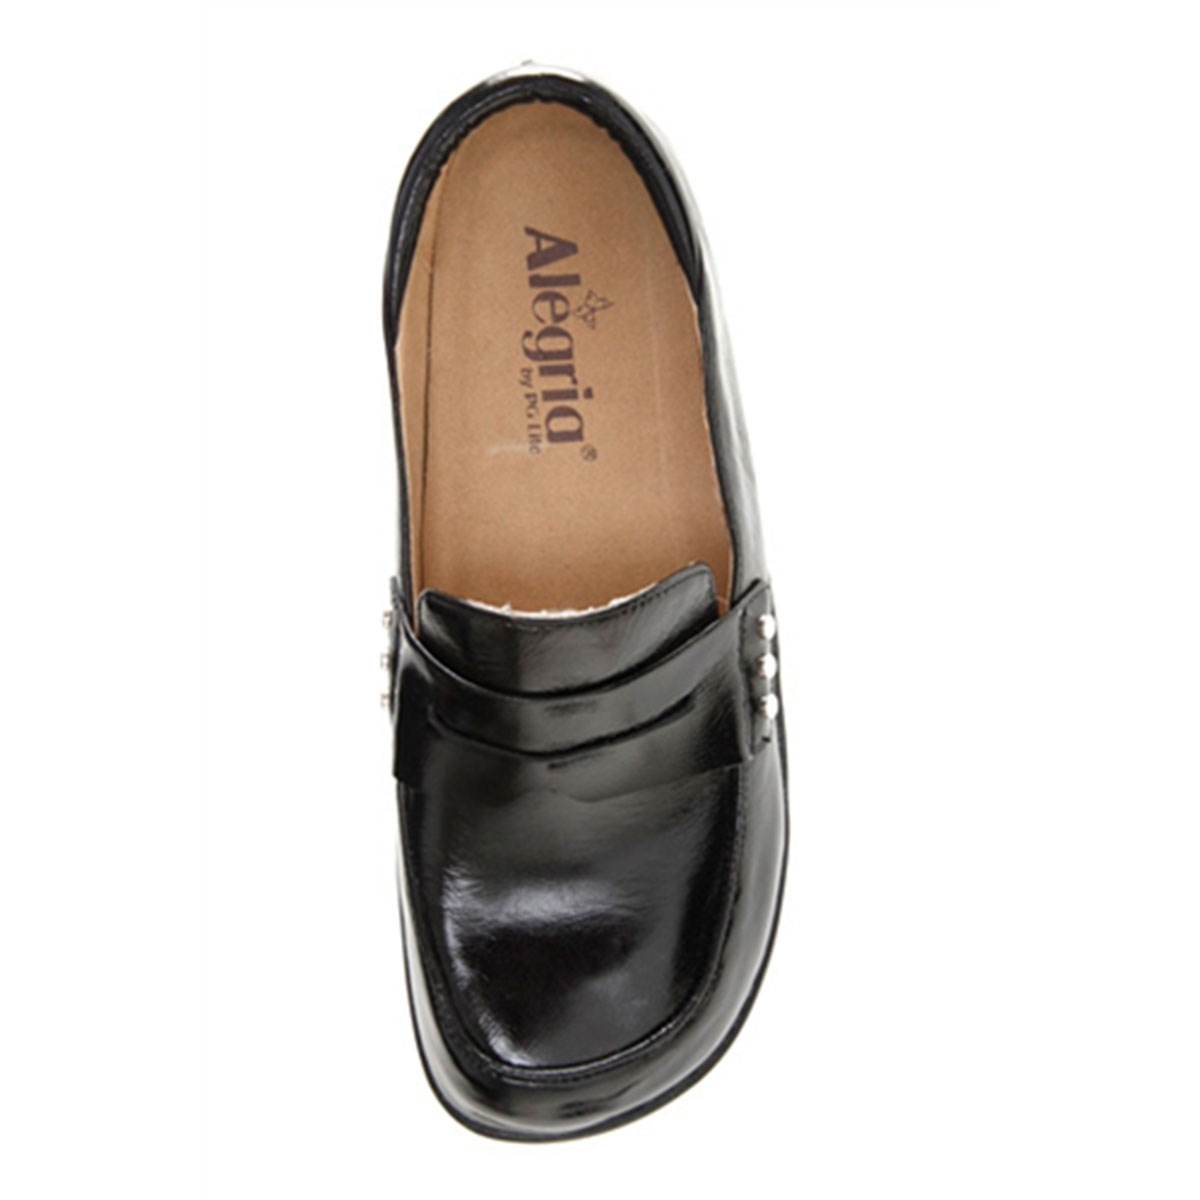 84eed63563a Taylor Black Waxy - Alegria Shoes